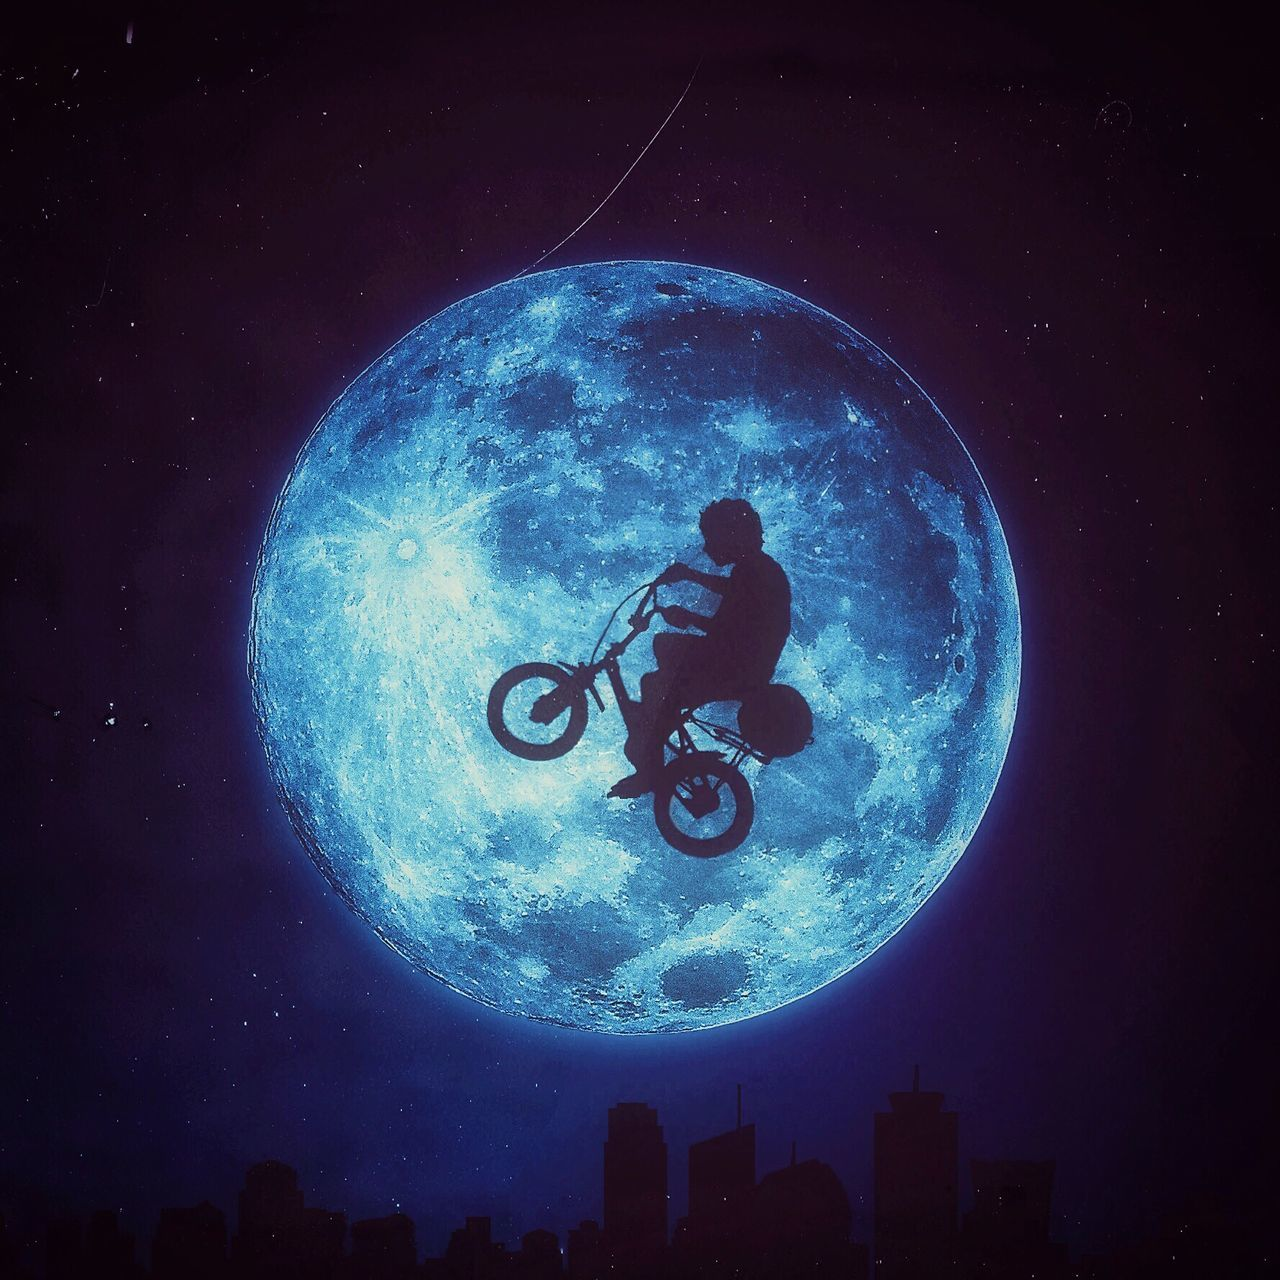 Digital composite of man stunt with bicycle